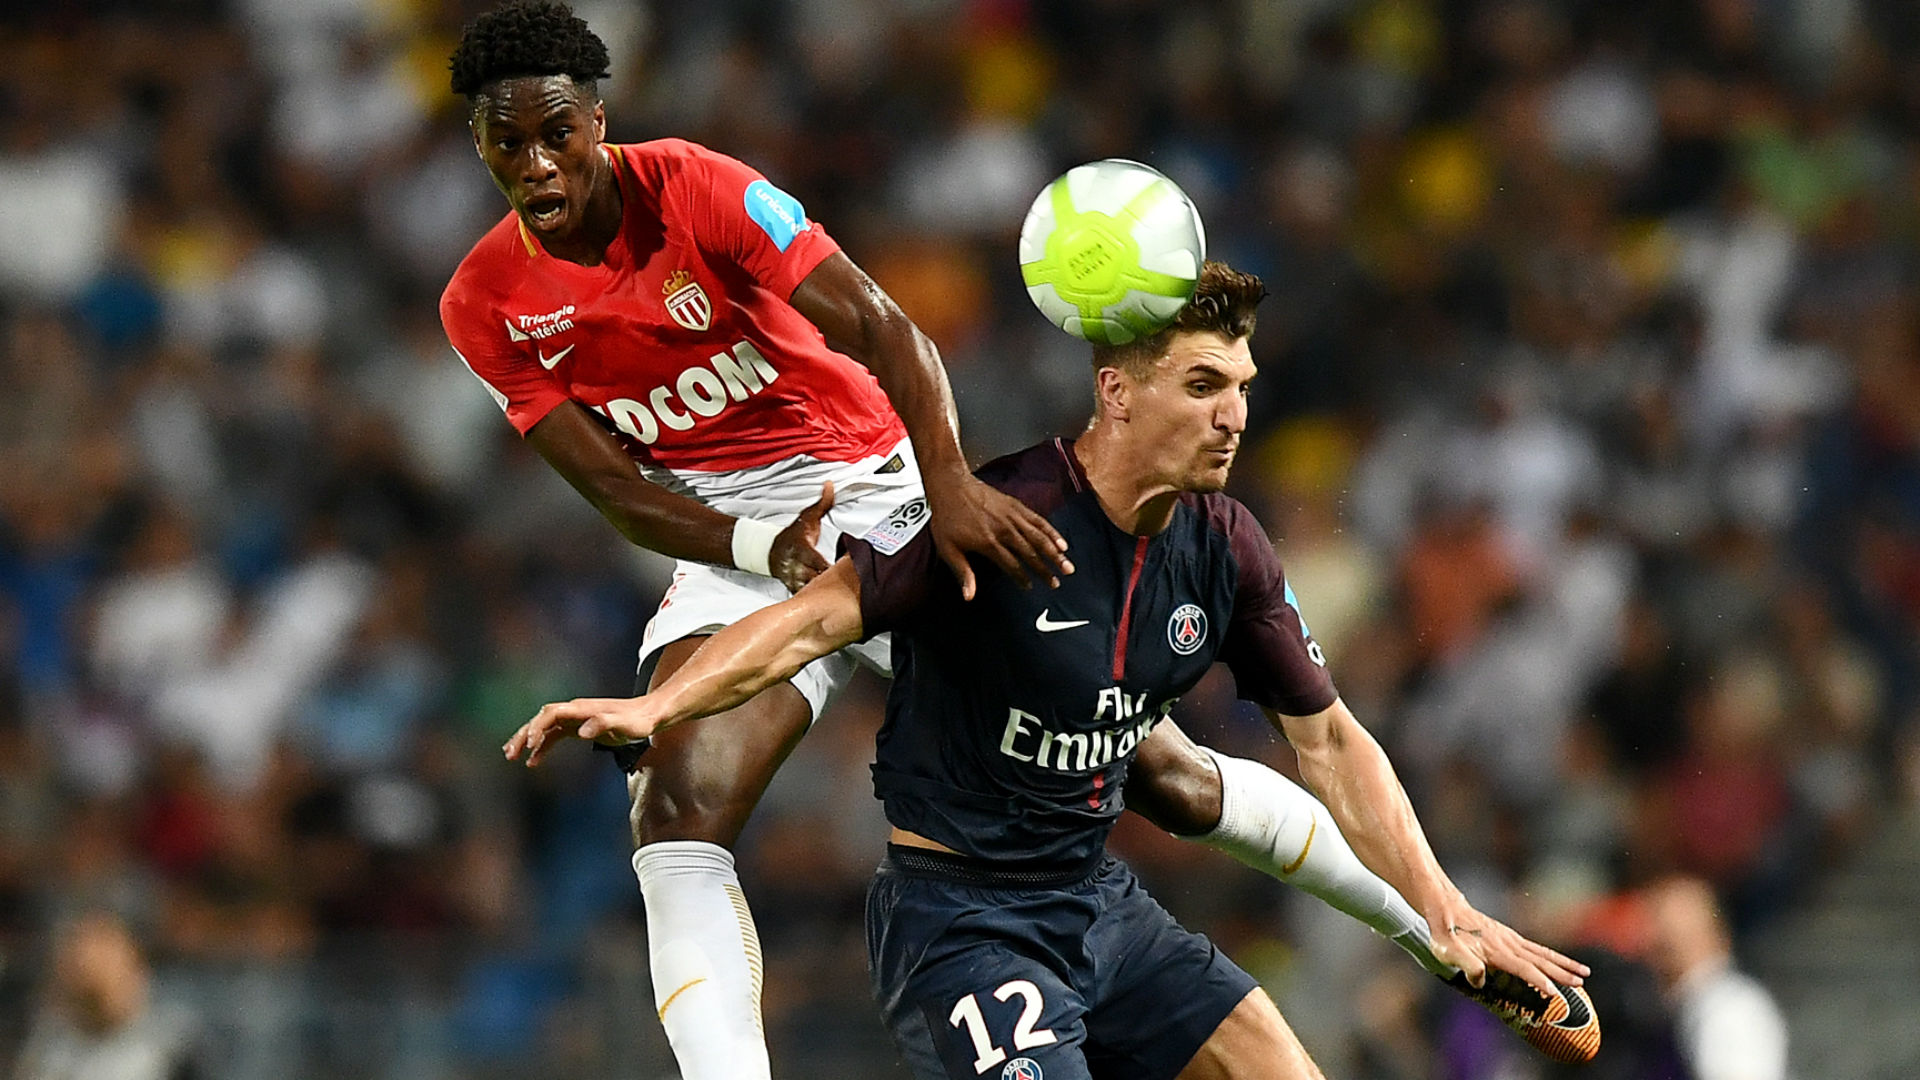 Paris Saint-Germain 7 Monaco 1: PSG regains the Ligue 1 title